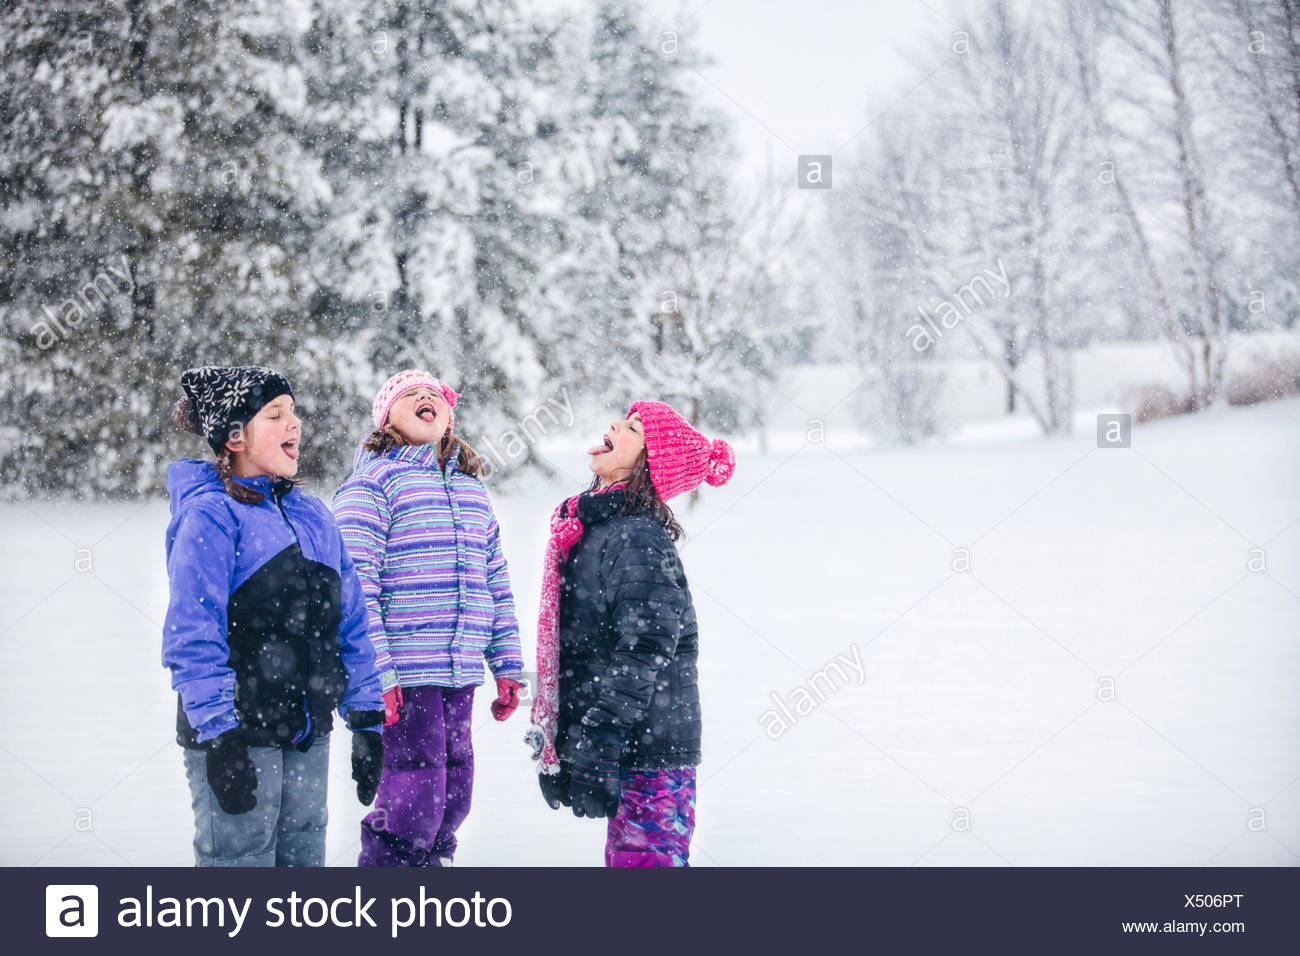 Friends catching snowflake on their tongues - Stock Image